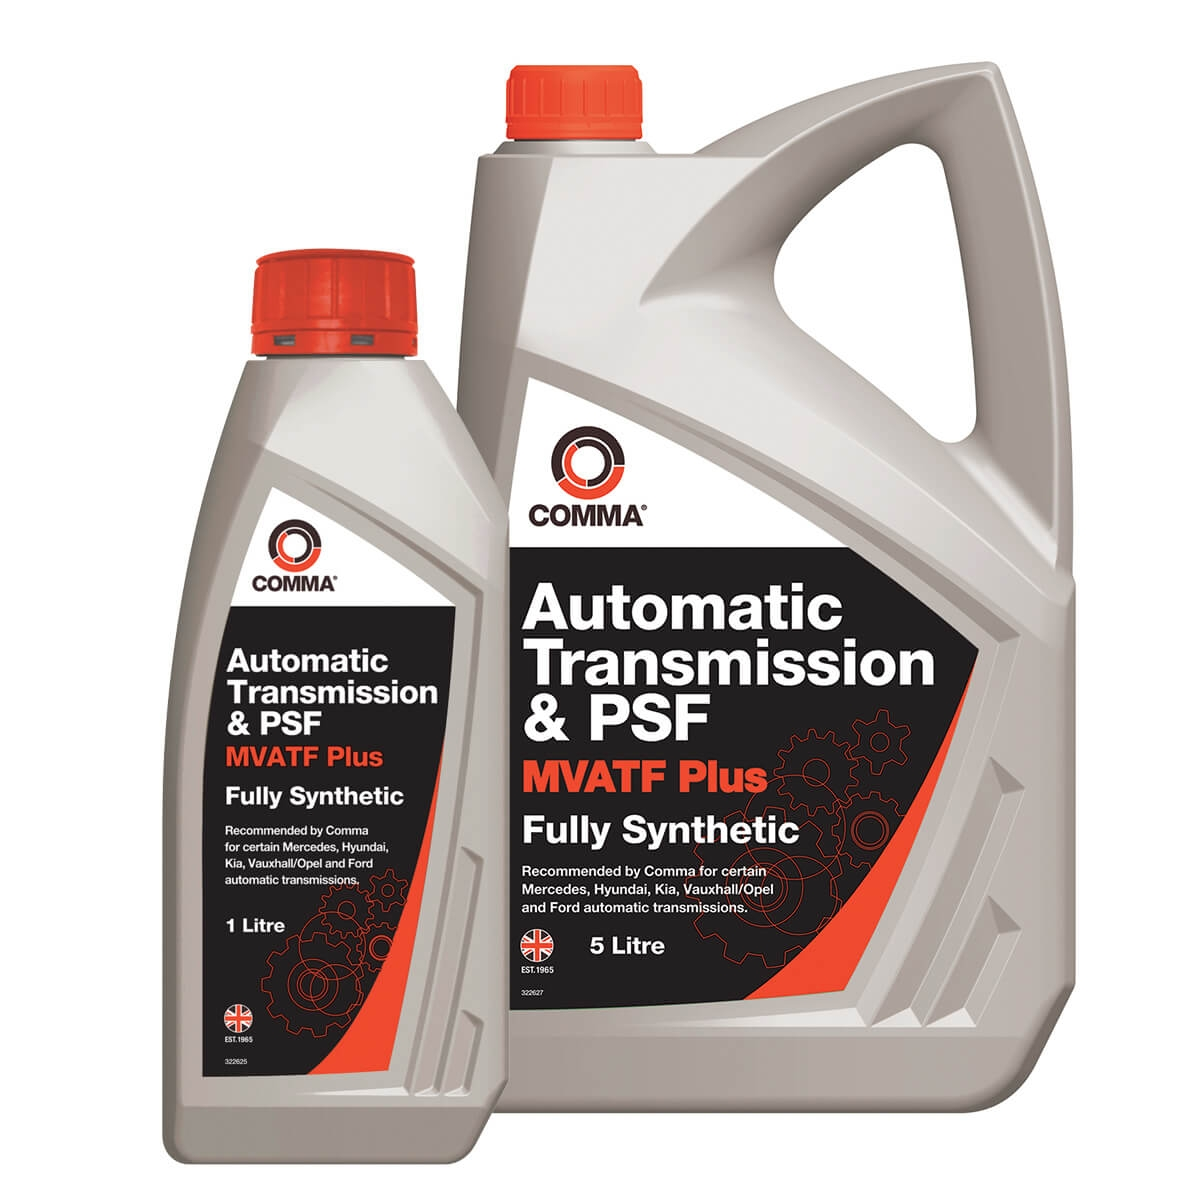 AUDI S8 Automatic Transmission Oil